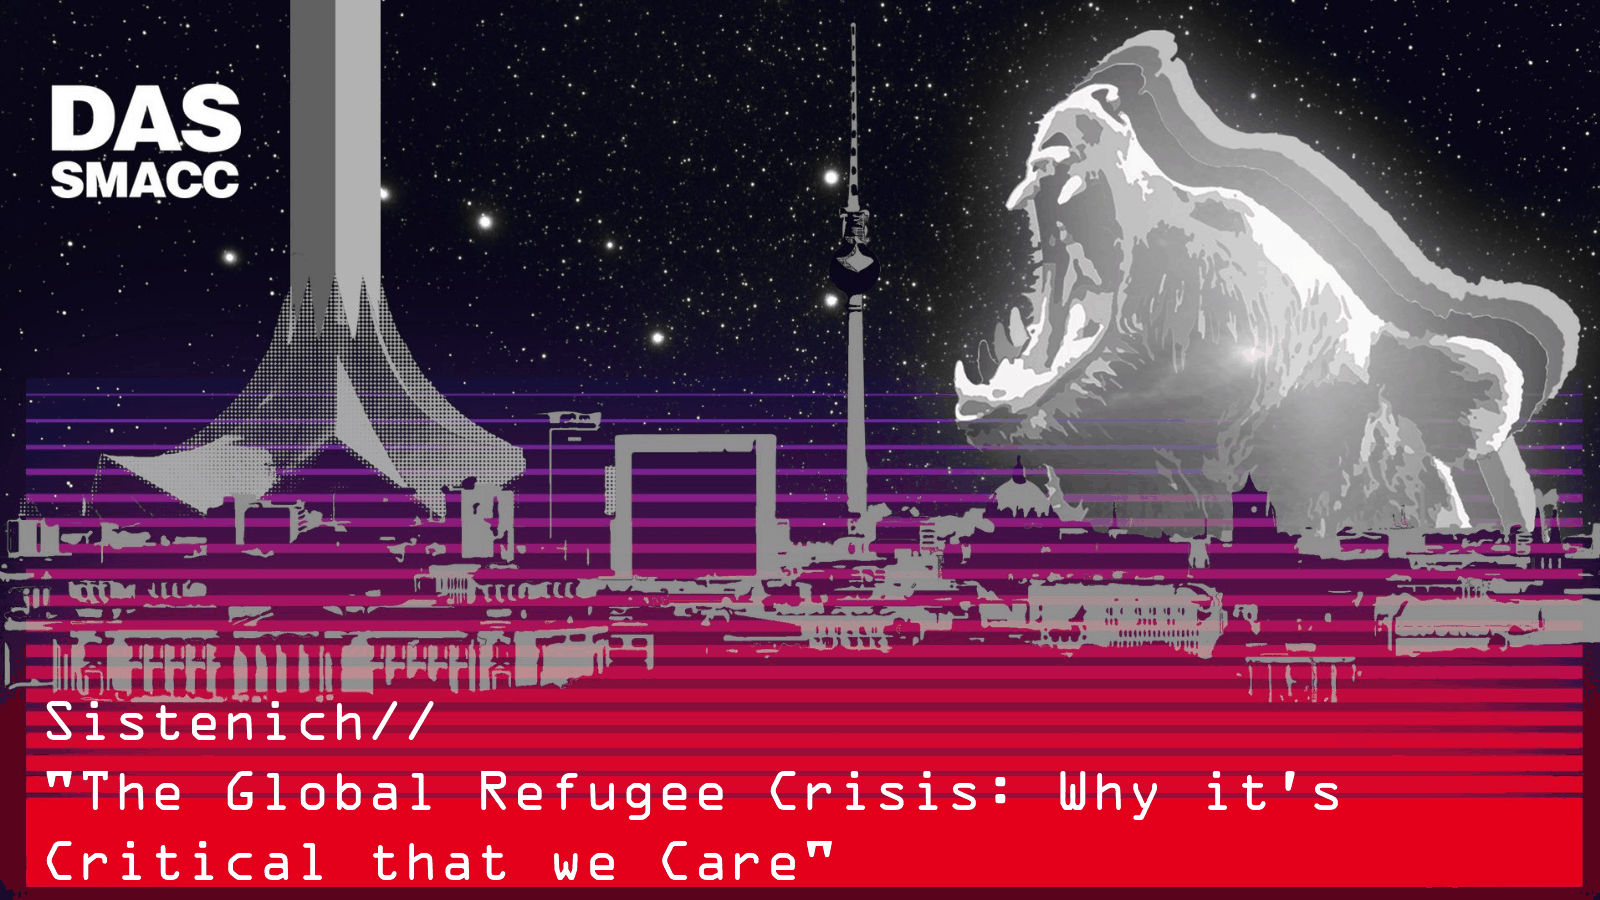 Global refugee crisis